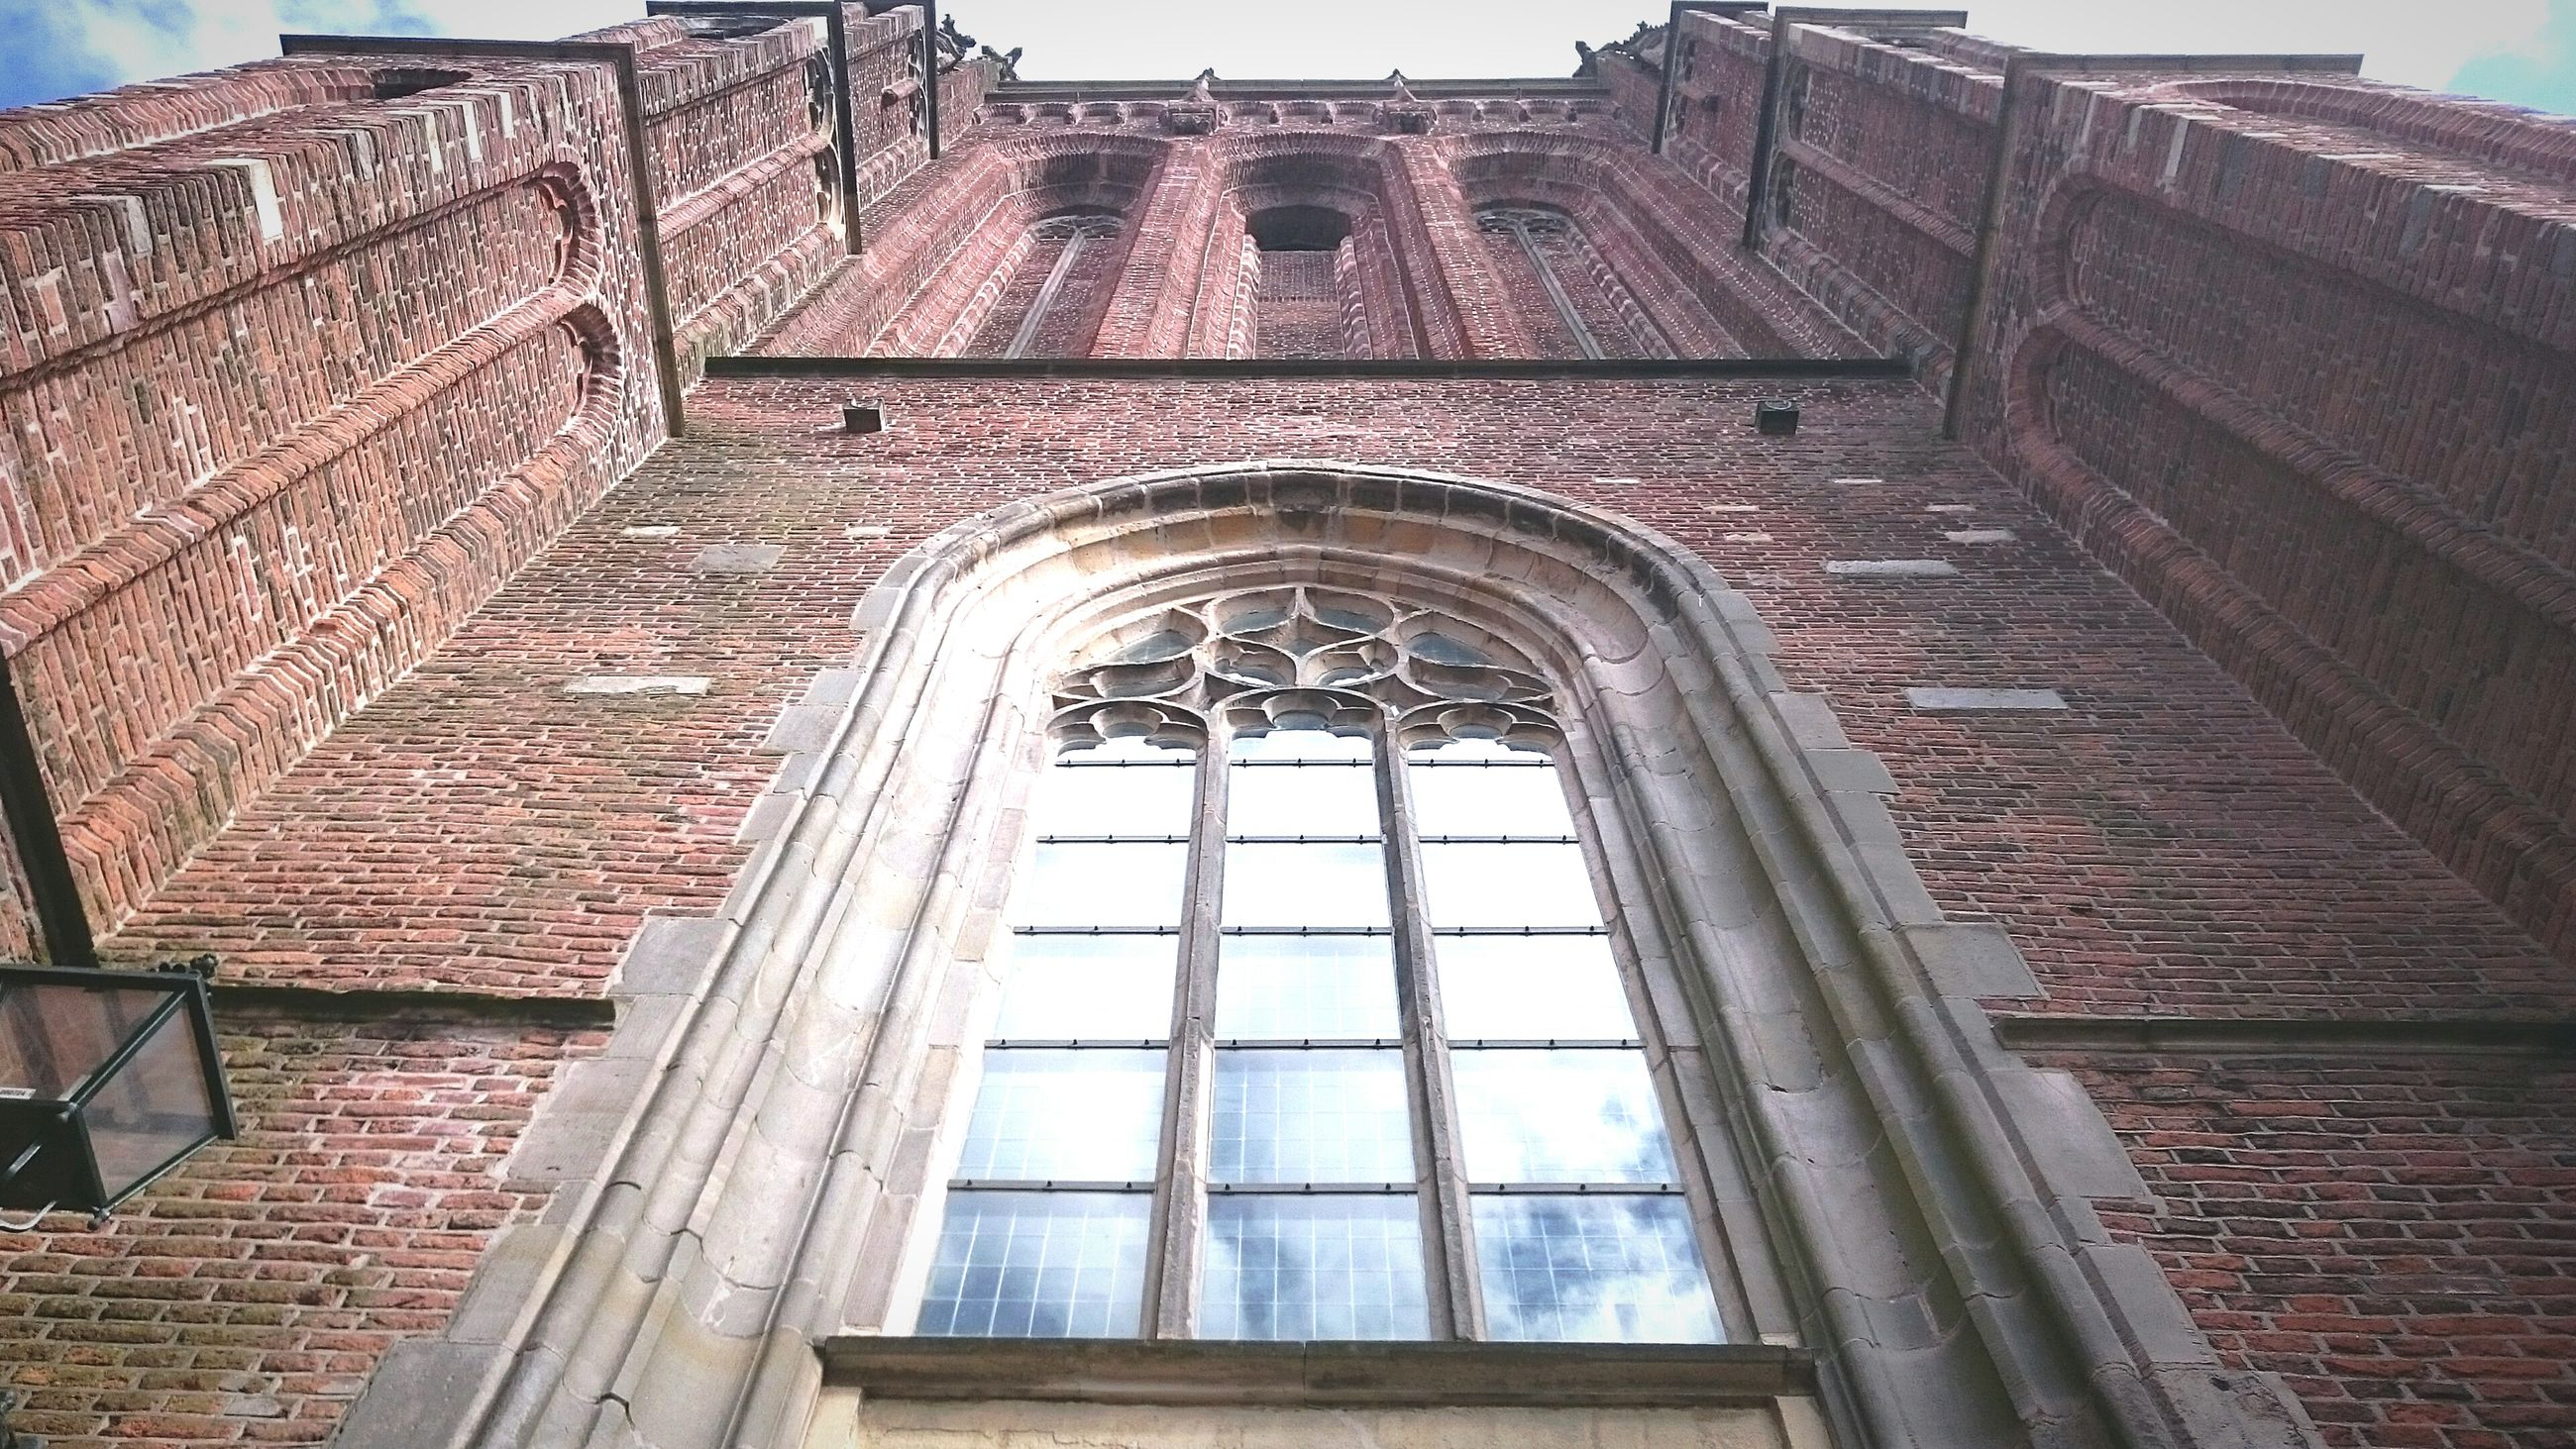 architecture, built structure, building exterior, low angle view, window, arch, brick wall, history, old, building, sky, day, no people, facade, outdoors, architectural feature, stone wall, city, glass - material, tower